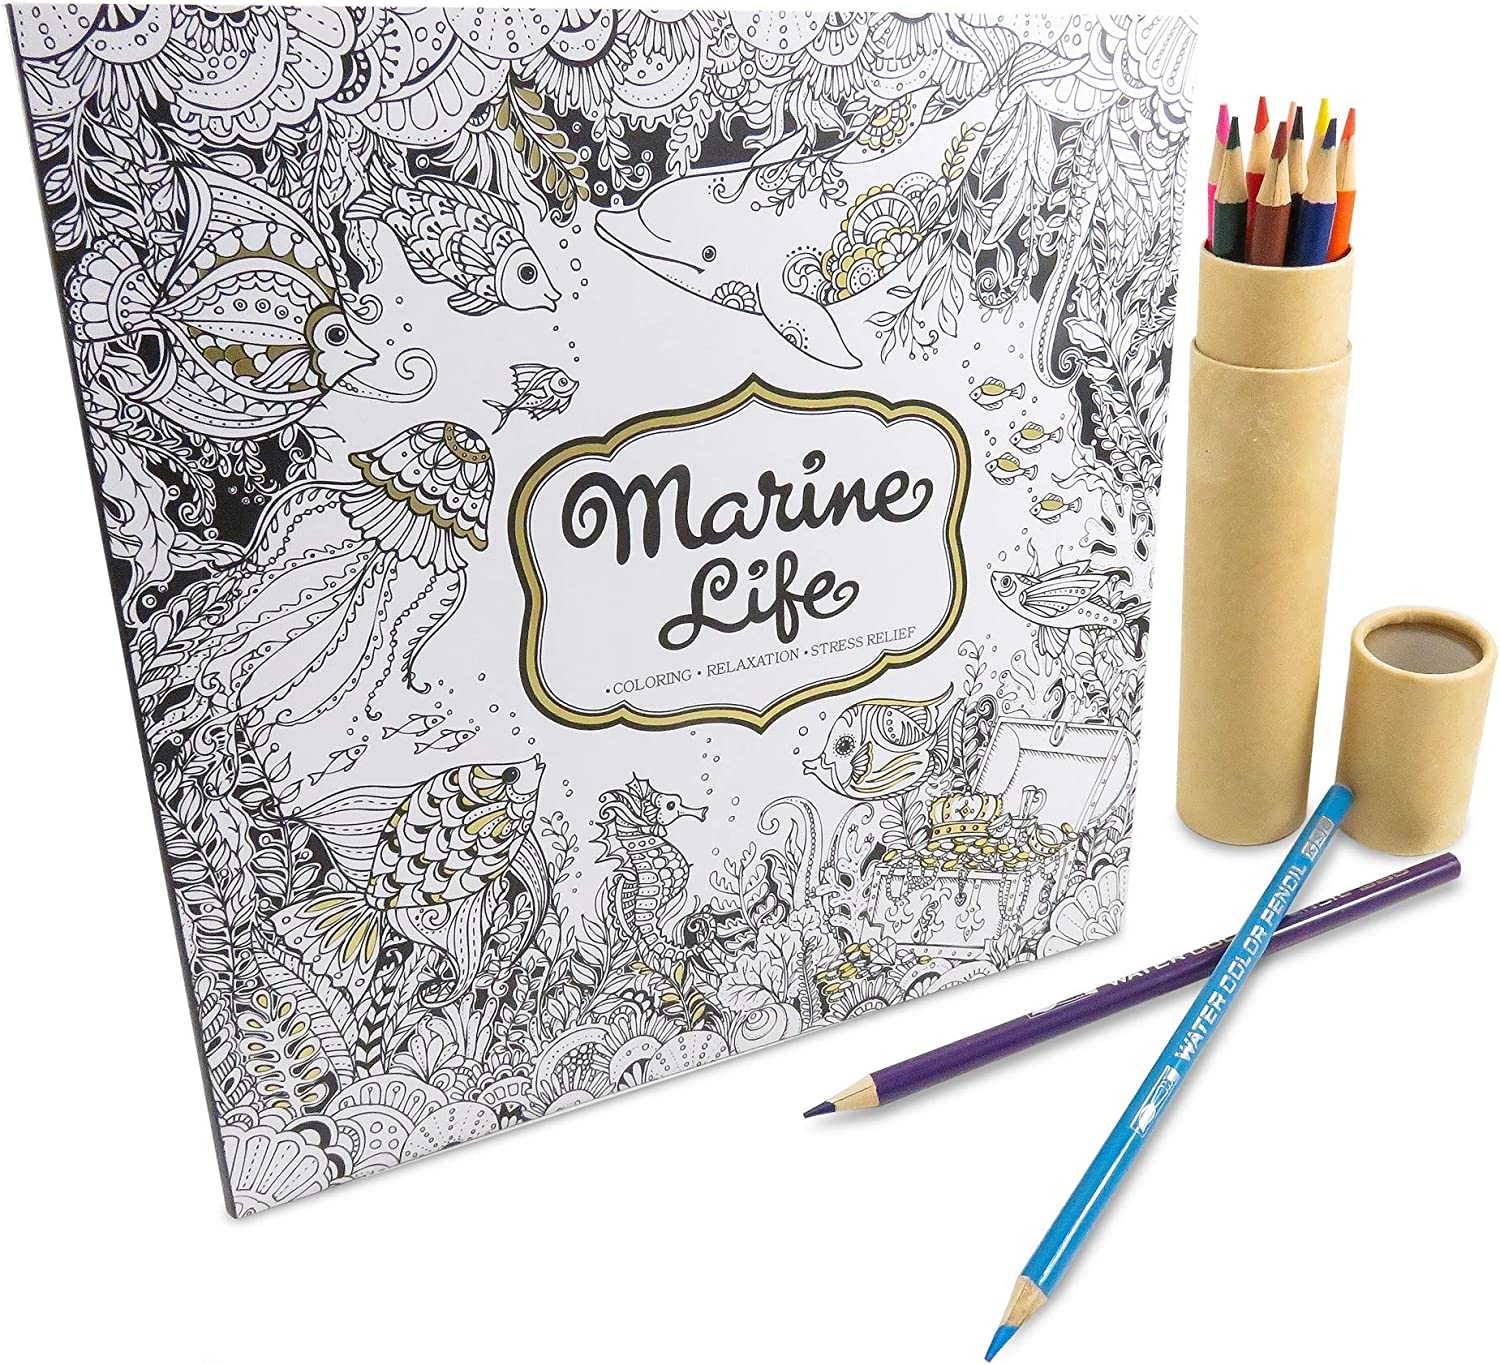 Rainbow colord Pencil Set Art Tools (12) with Marine Life coloring Book 50 Pages - Perfect 13 Piece Stocking Stuffer